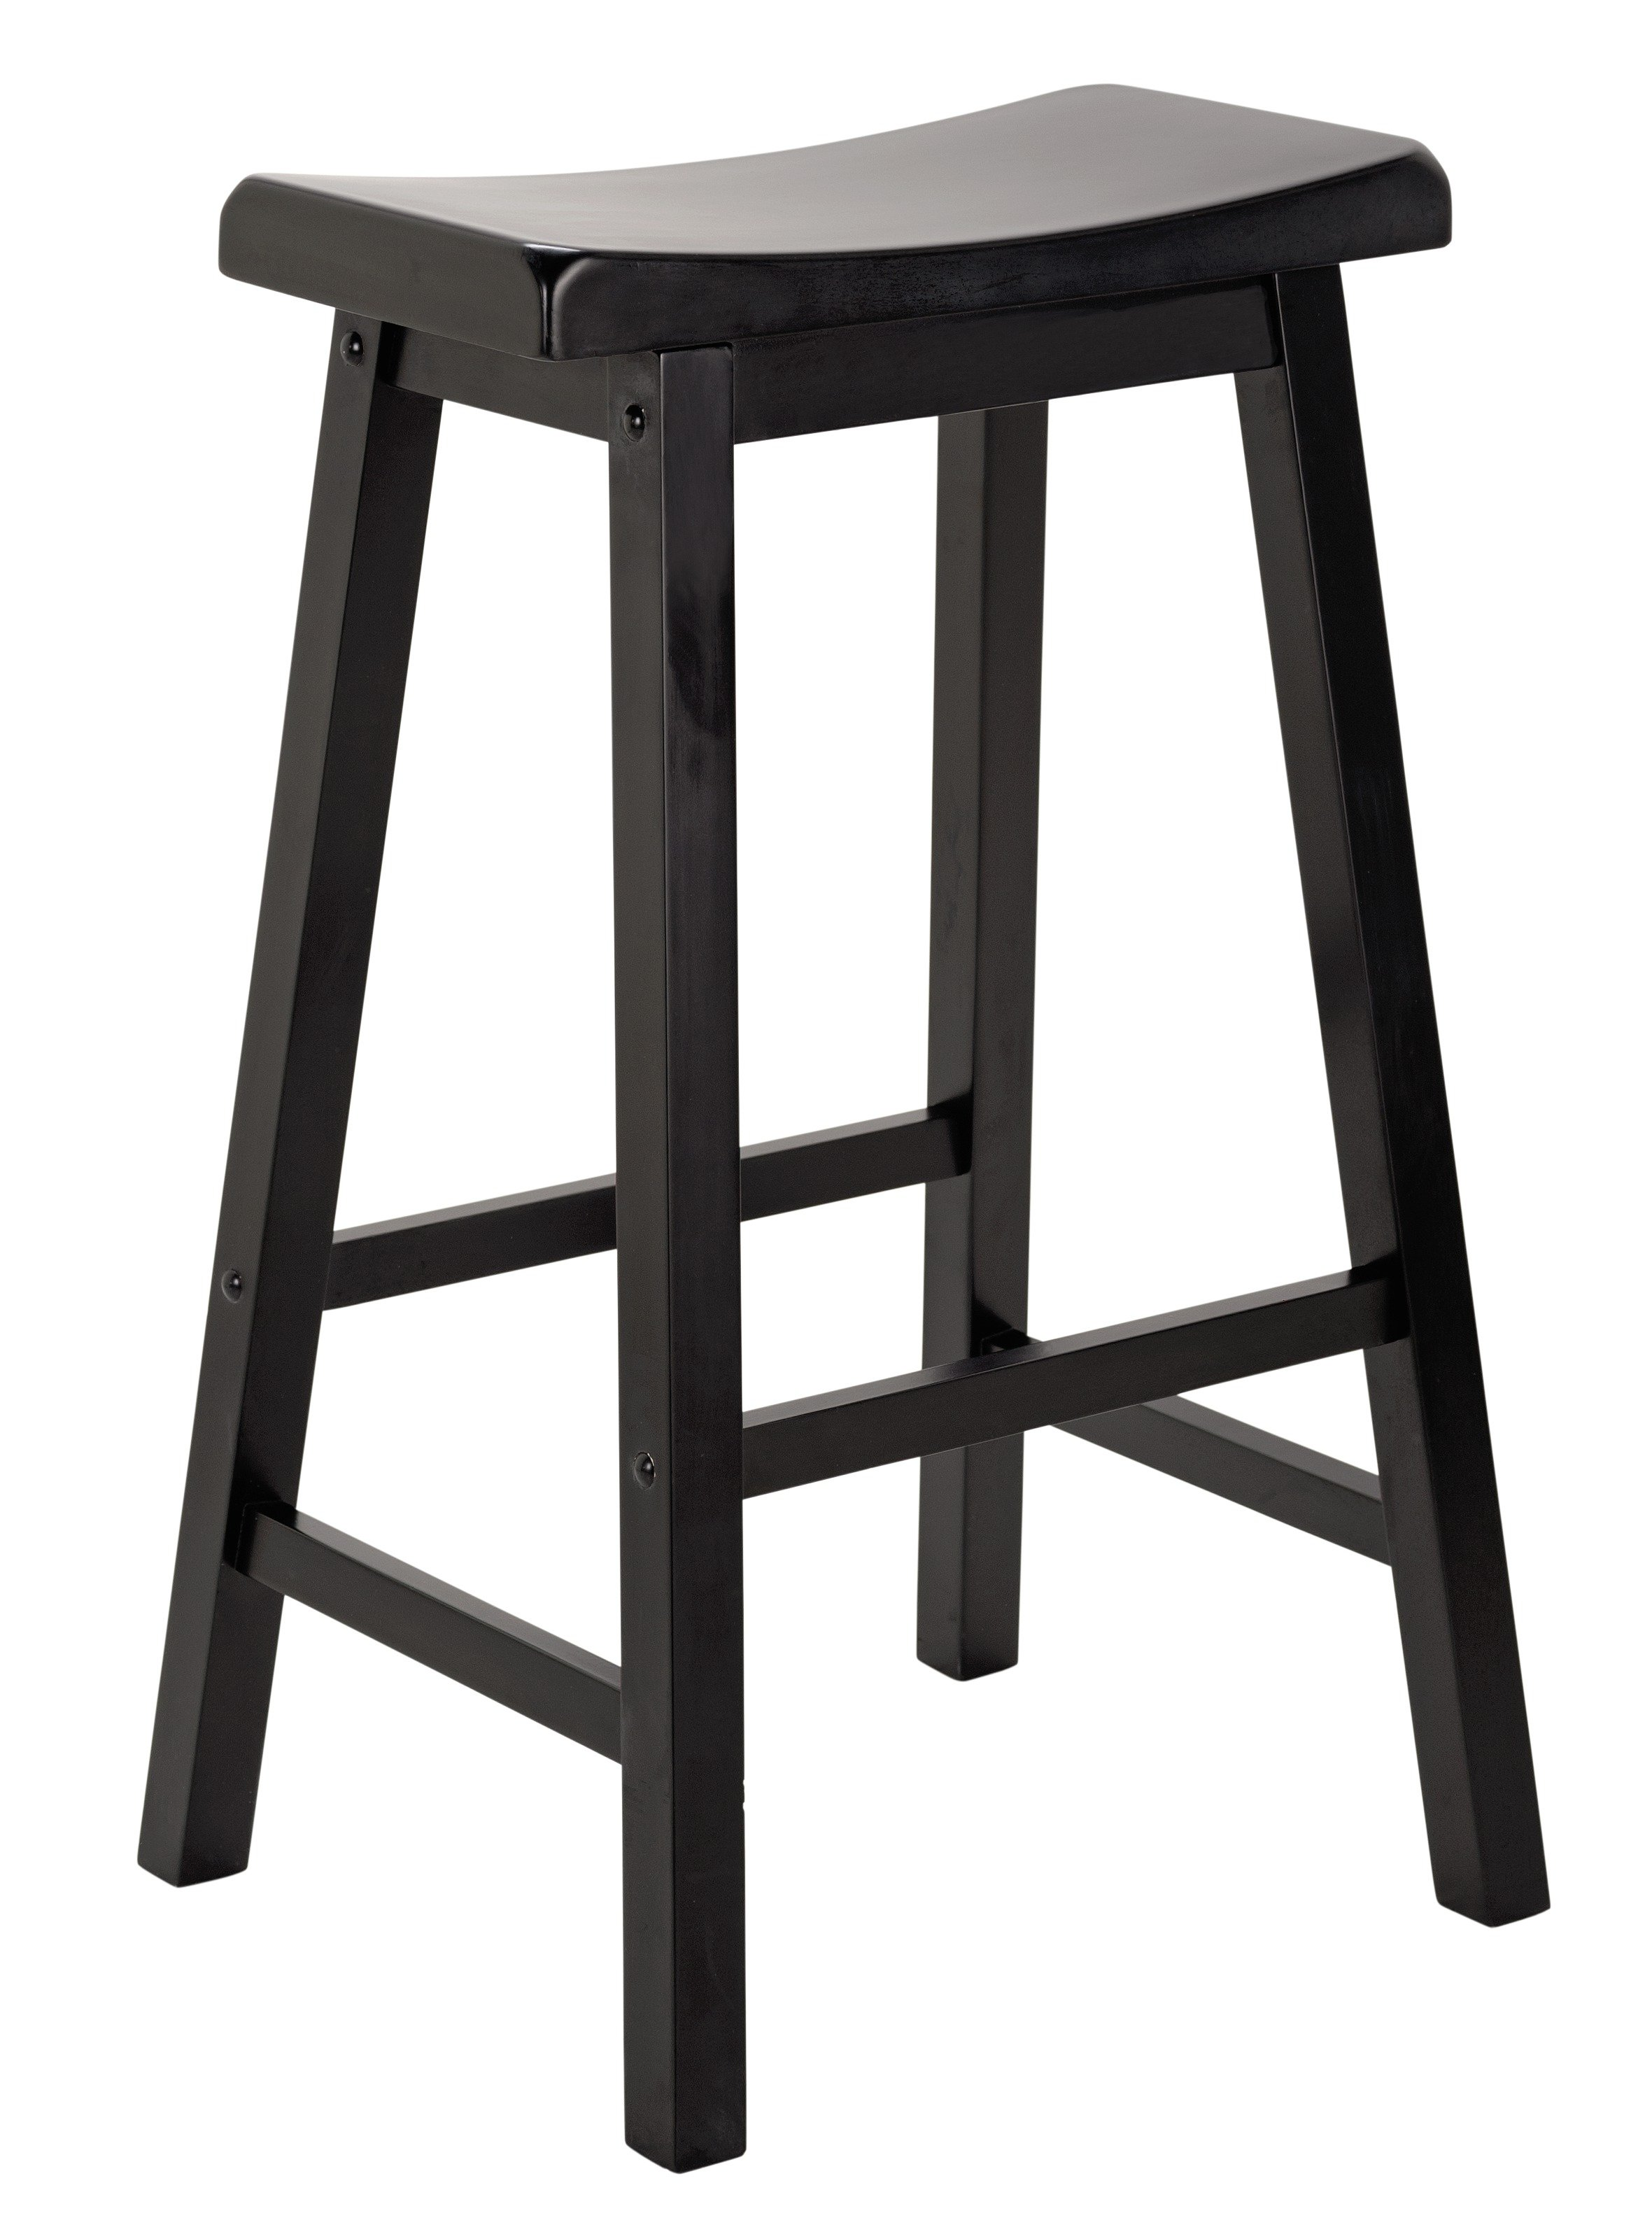 Sale On Hygena Solid Wood Saddle Bar Stool Black